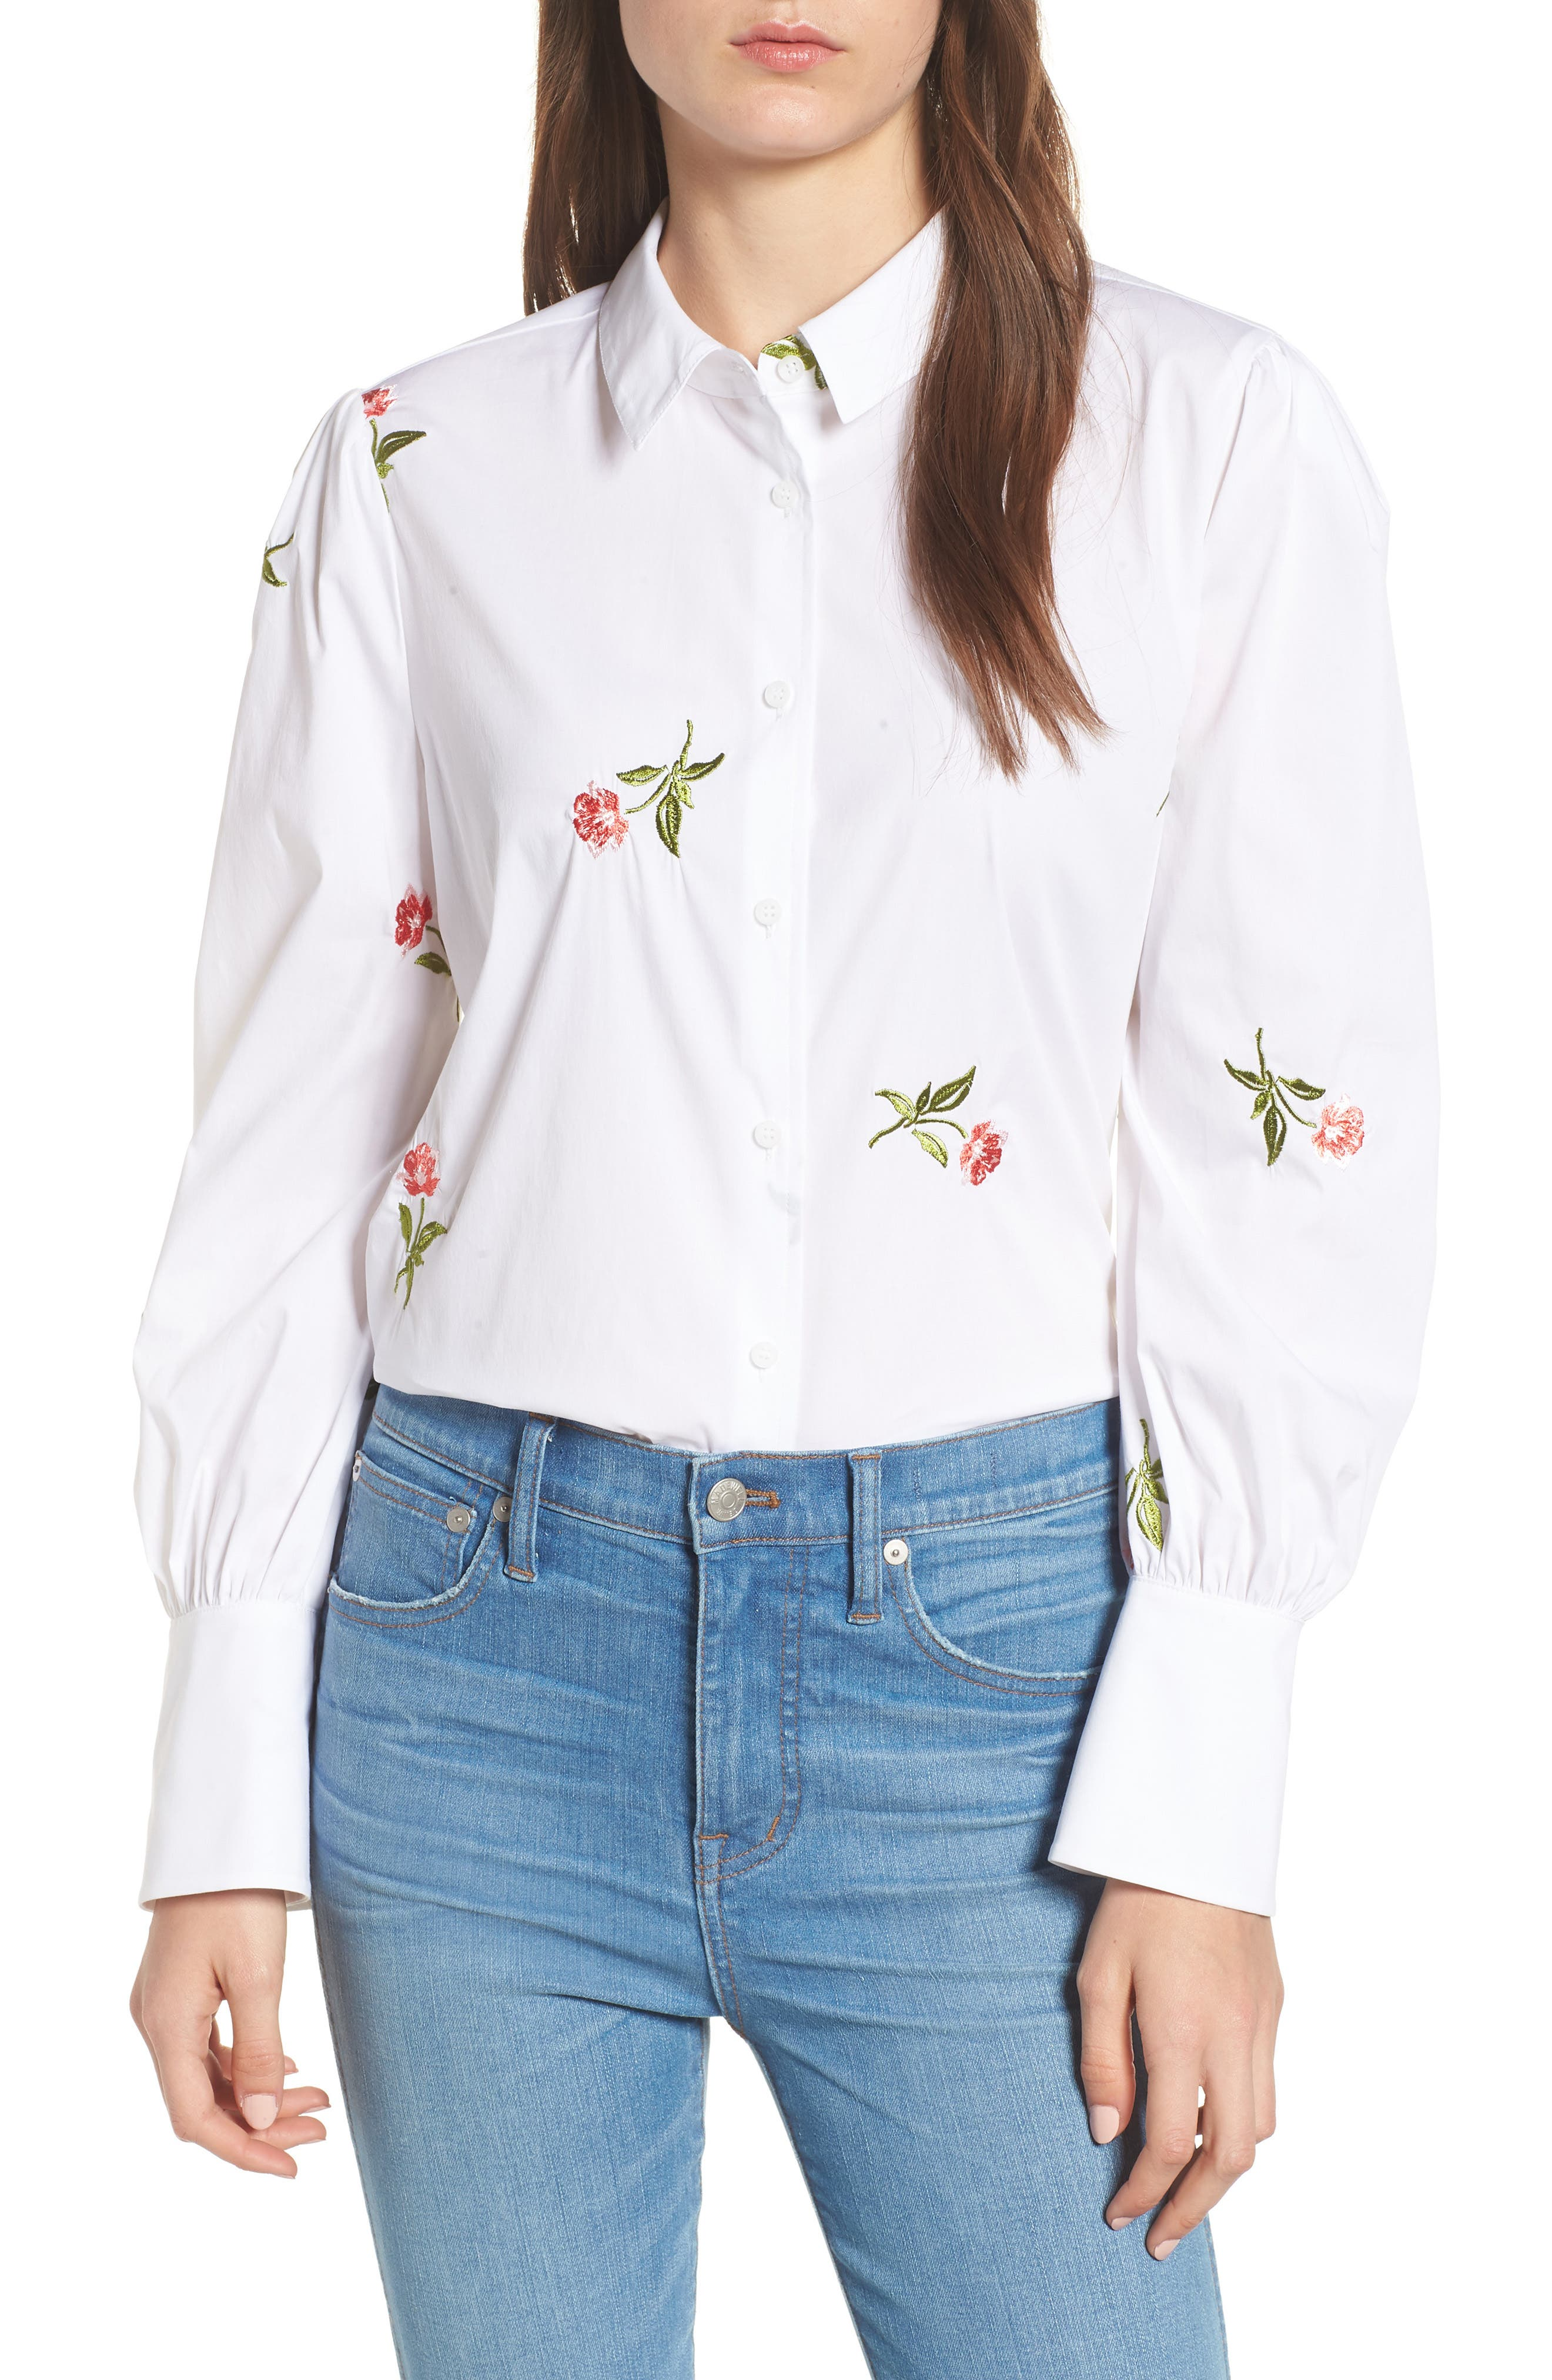 Embroidered Woven Shirt,                             Main thumbnail 1, color,                             White- Coral Bud Embroidery